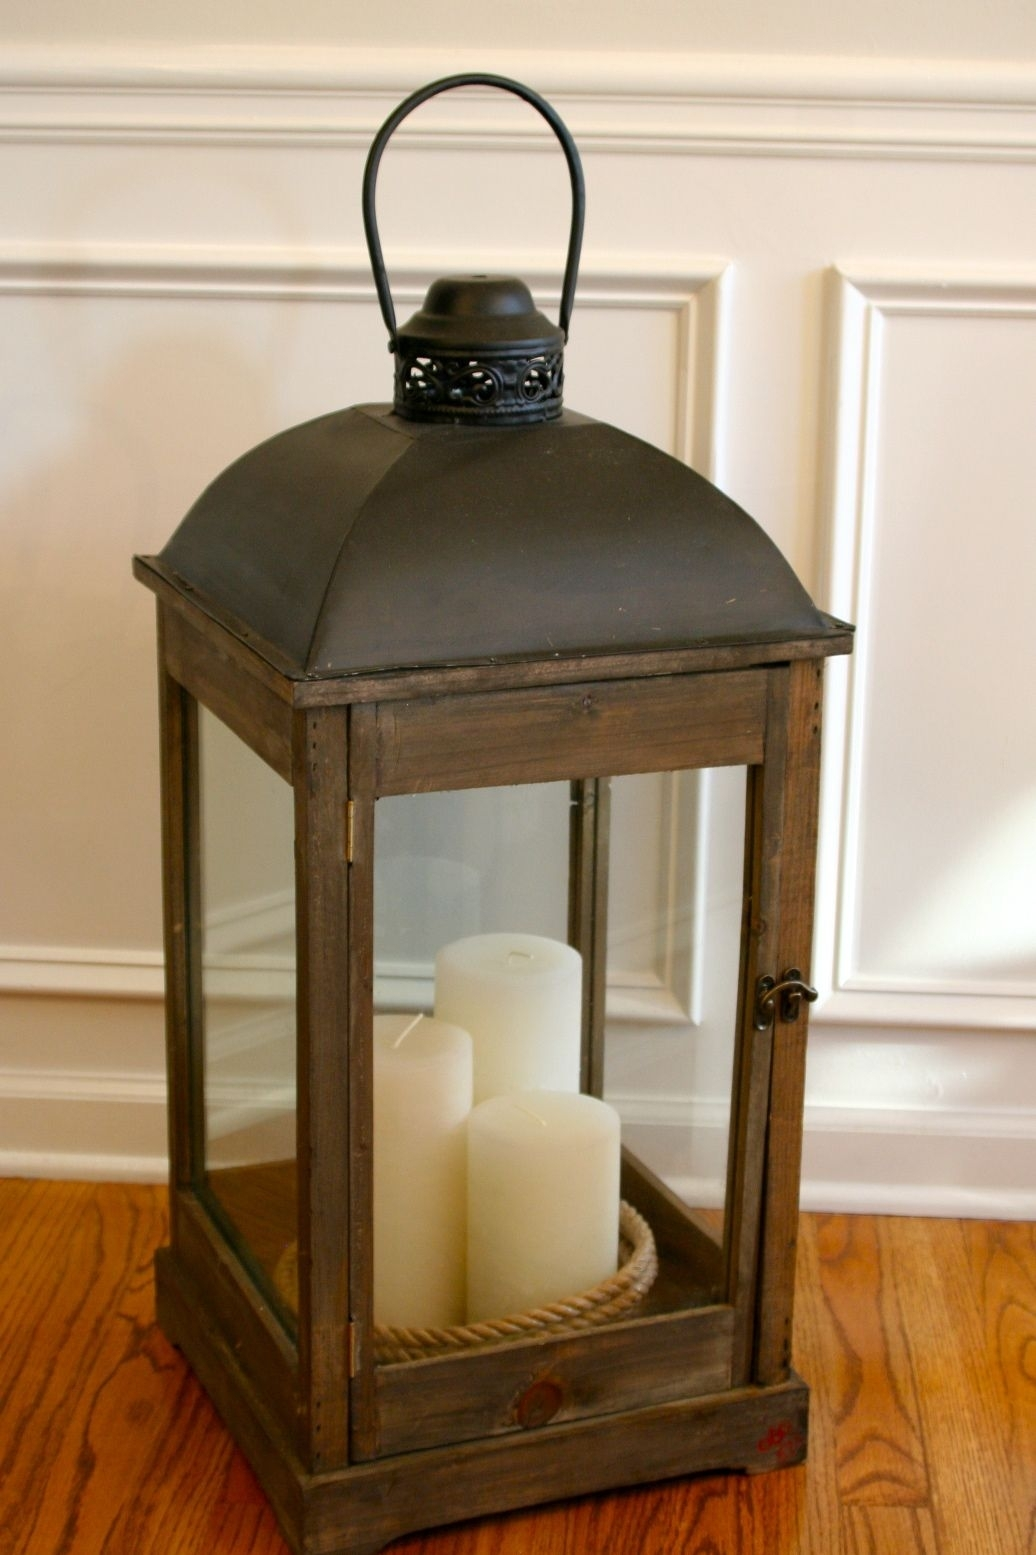 I Like The Candle Grouping | Decorations To Make | Pinterest With Regard To Outdoor Oversized Lanterns (View 4 of 20)